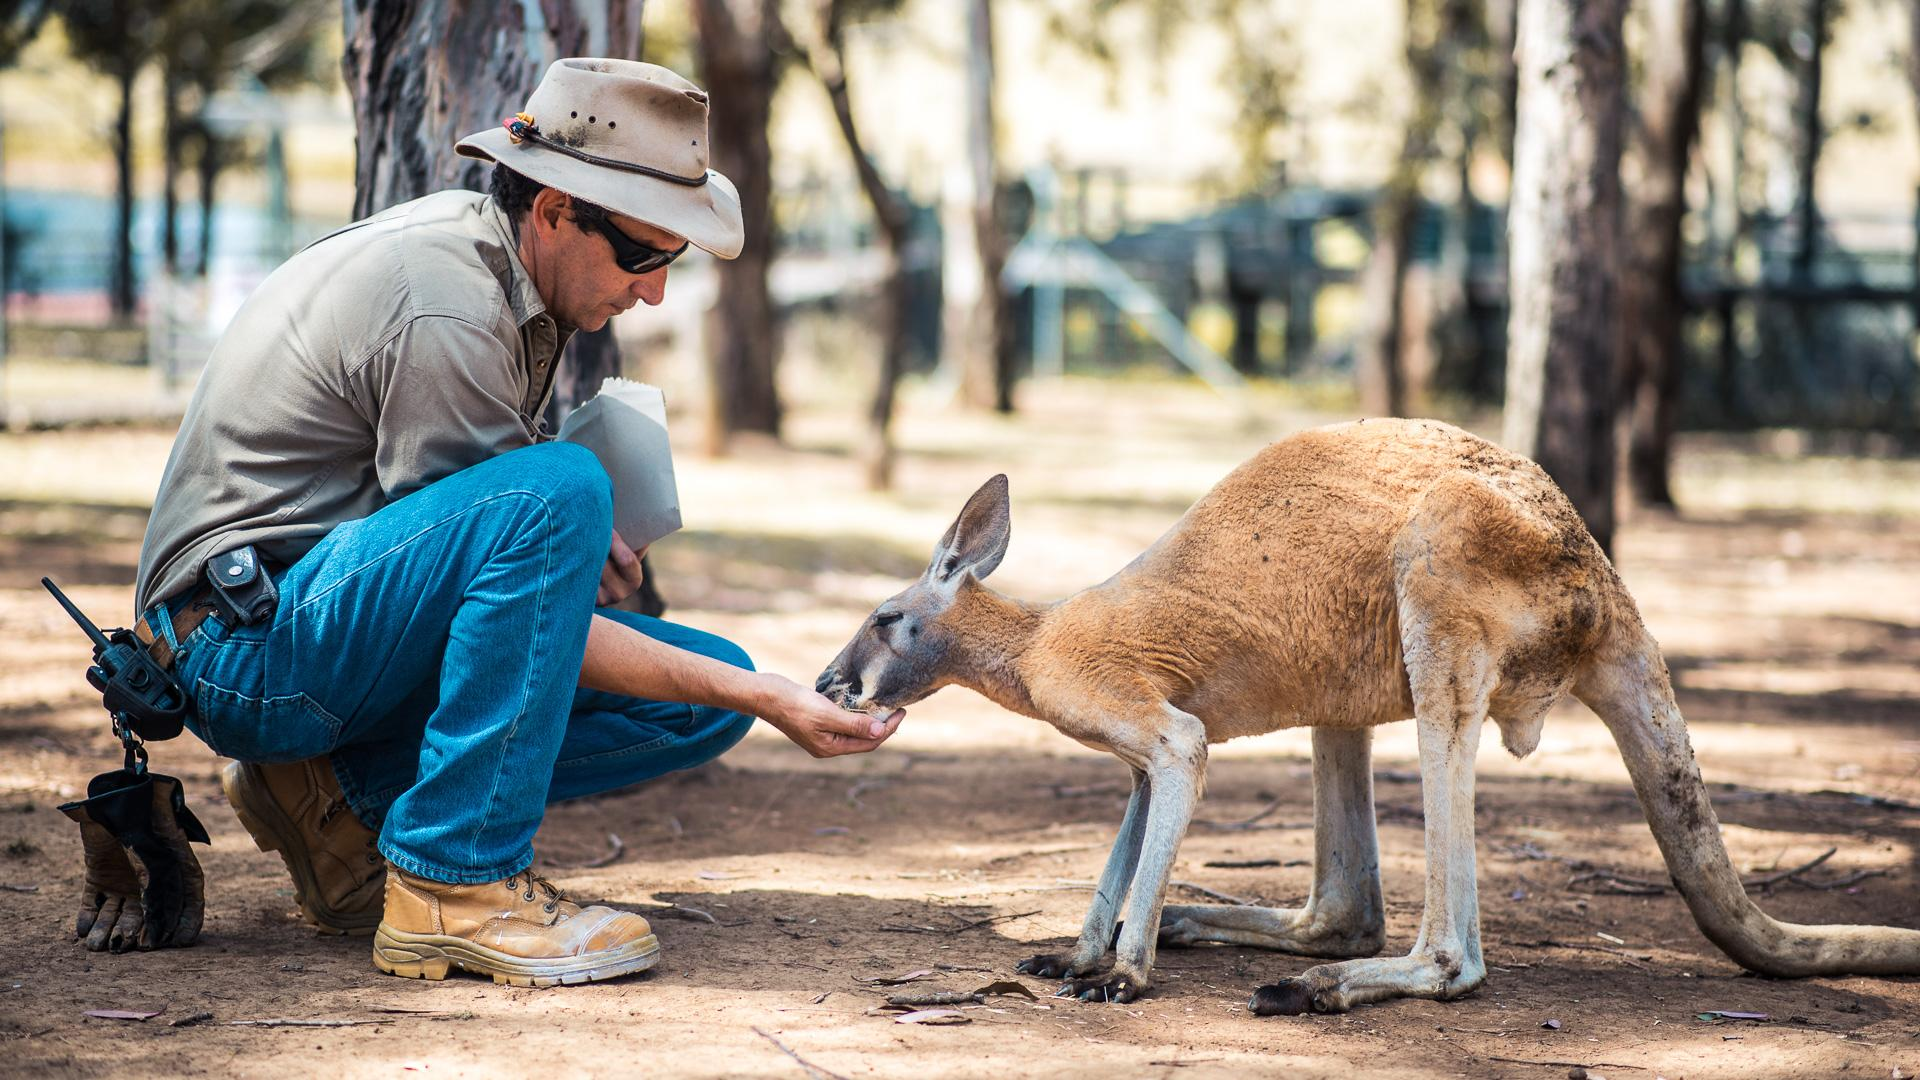 Kangaroo is eating out of a zoo keeper's hand.